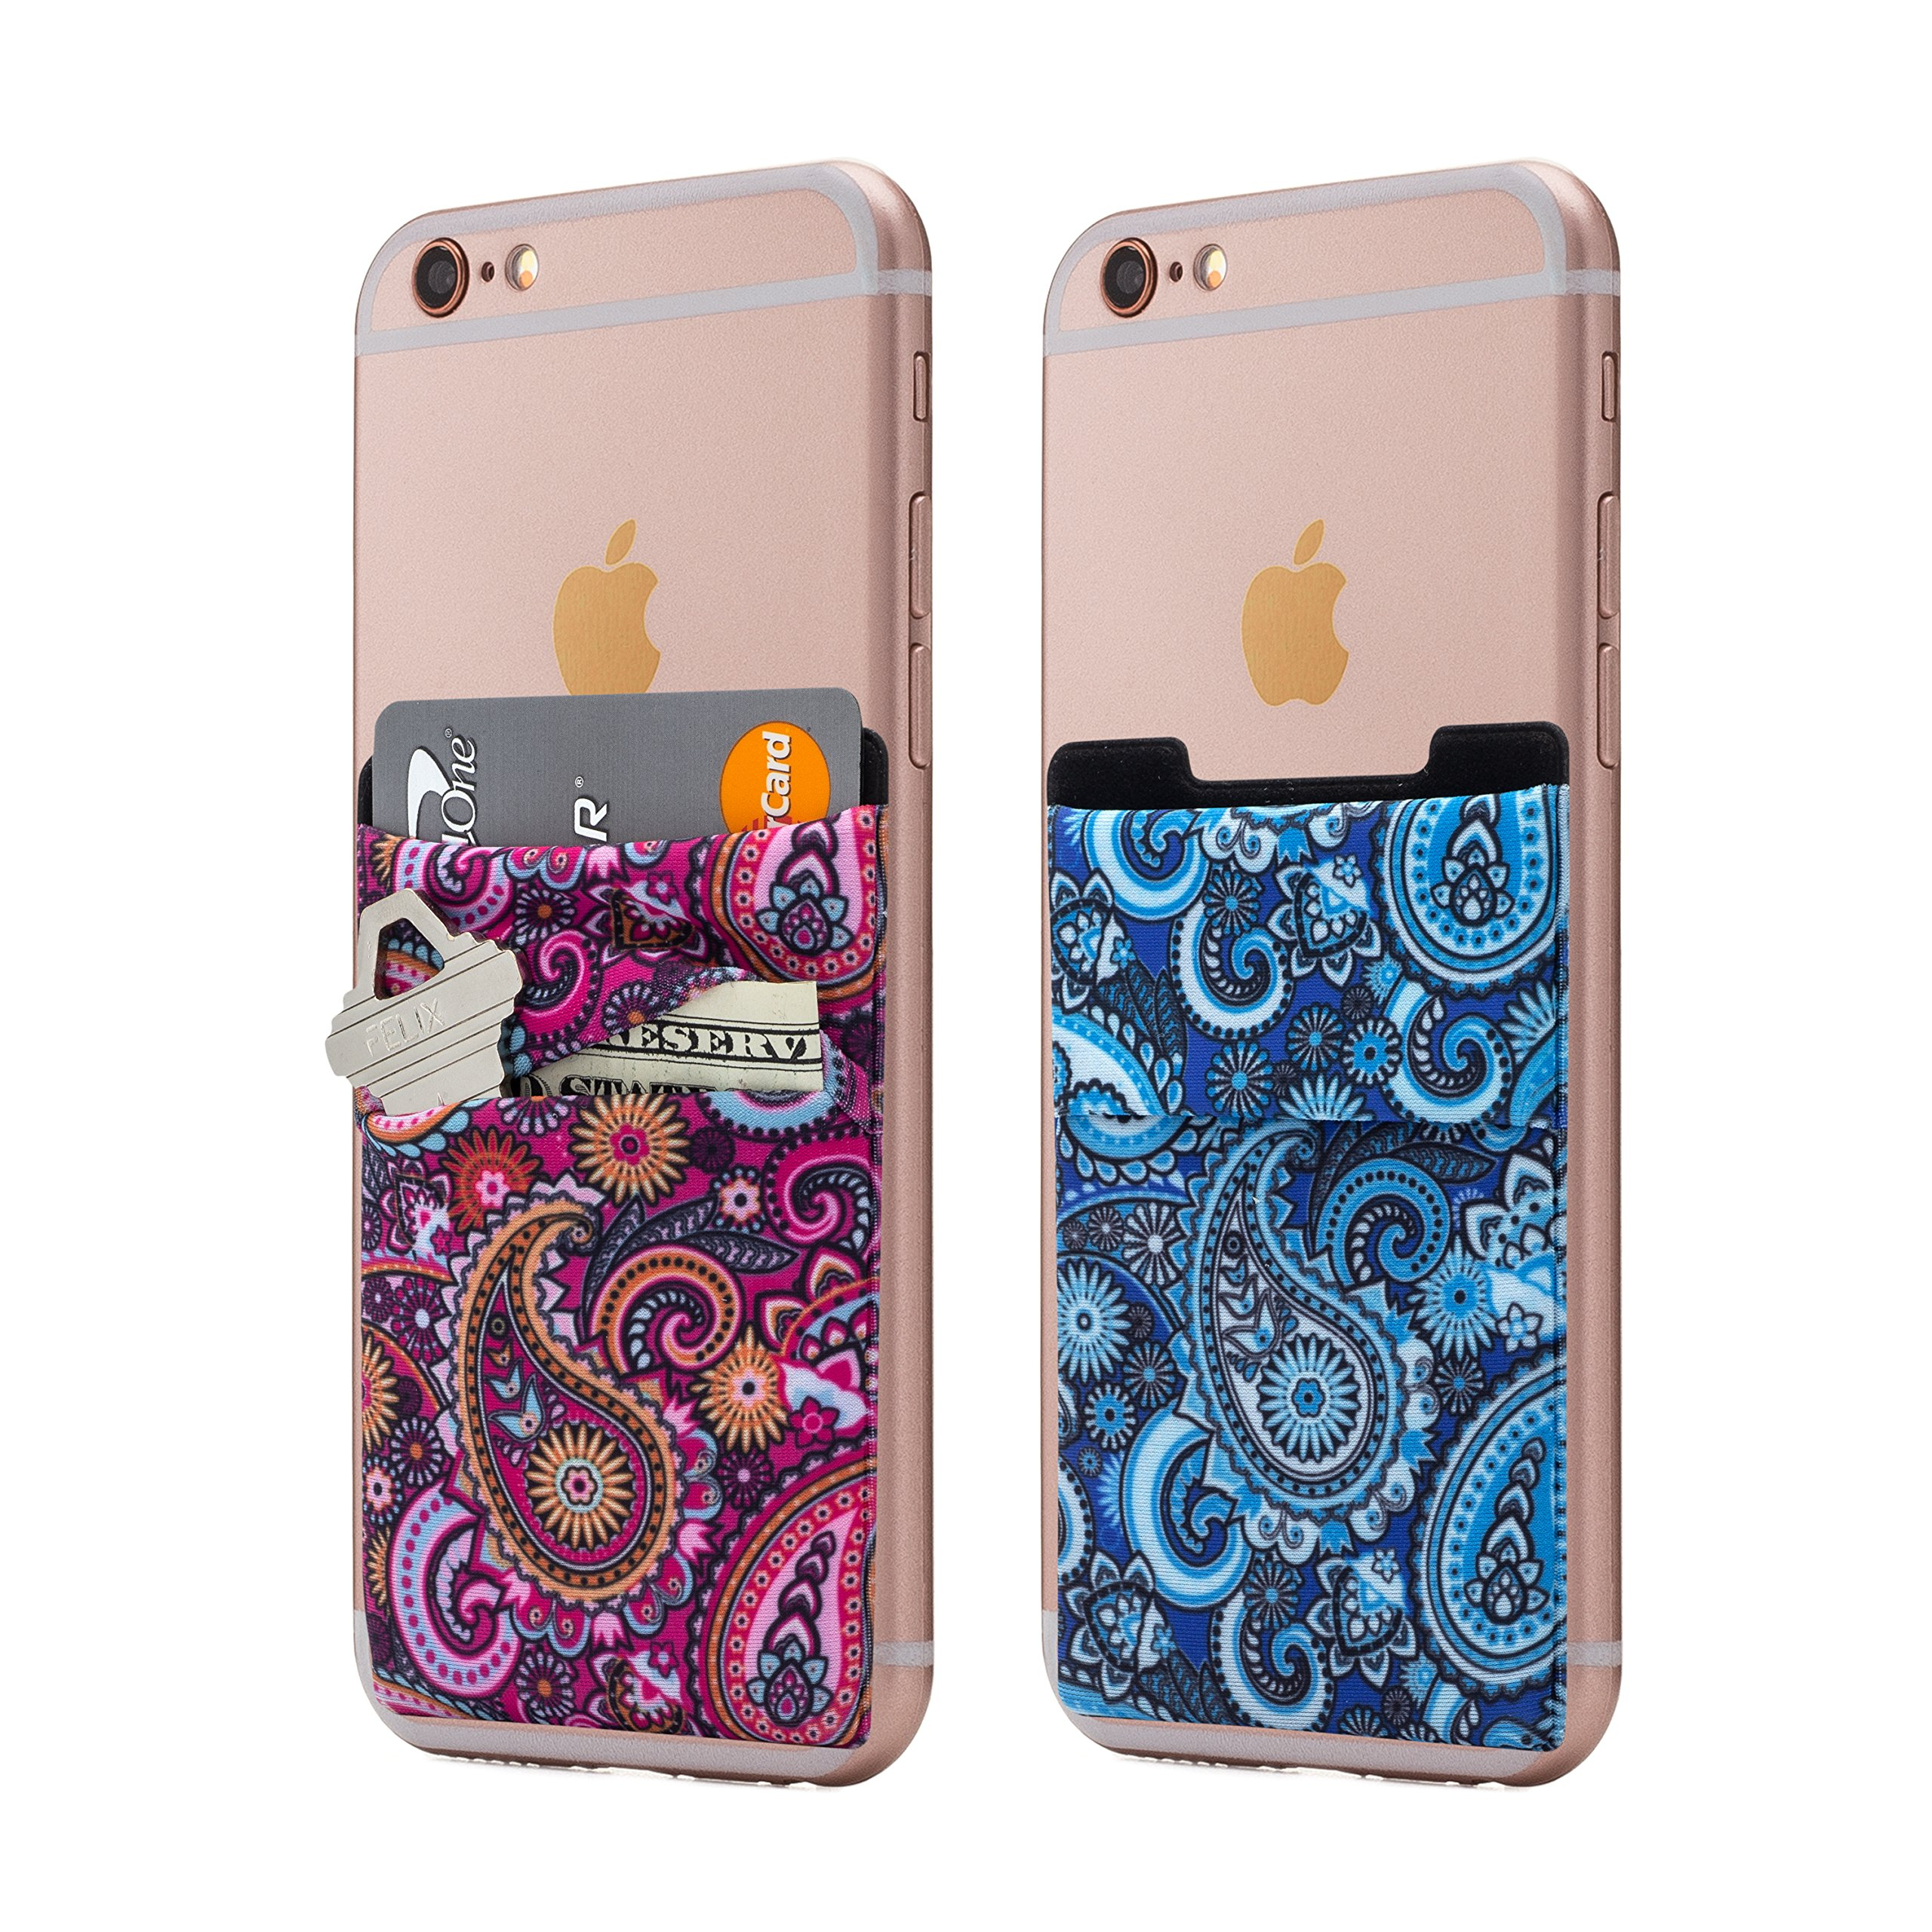 Stretchy Wallet Android smartphones Paisley